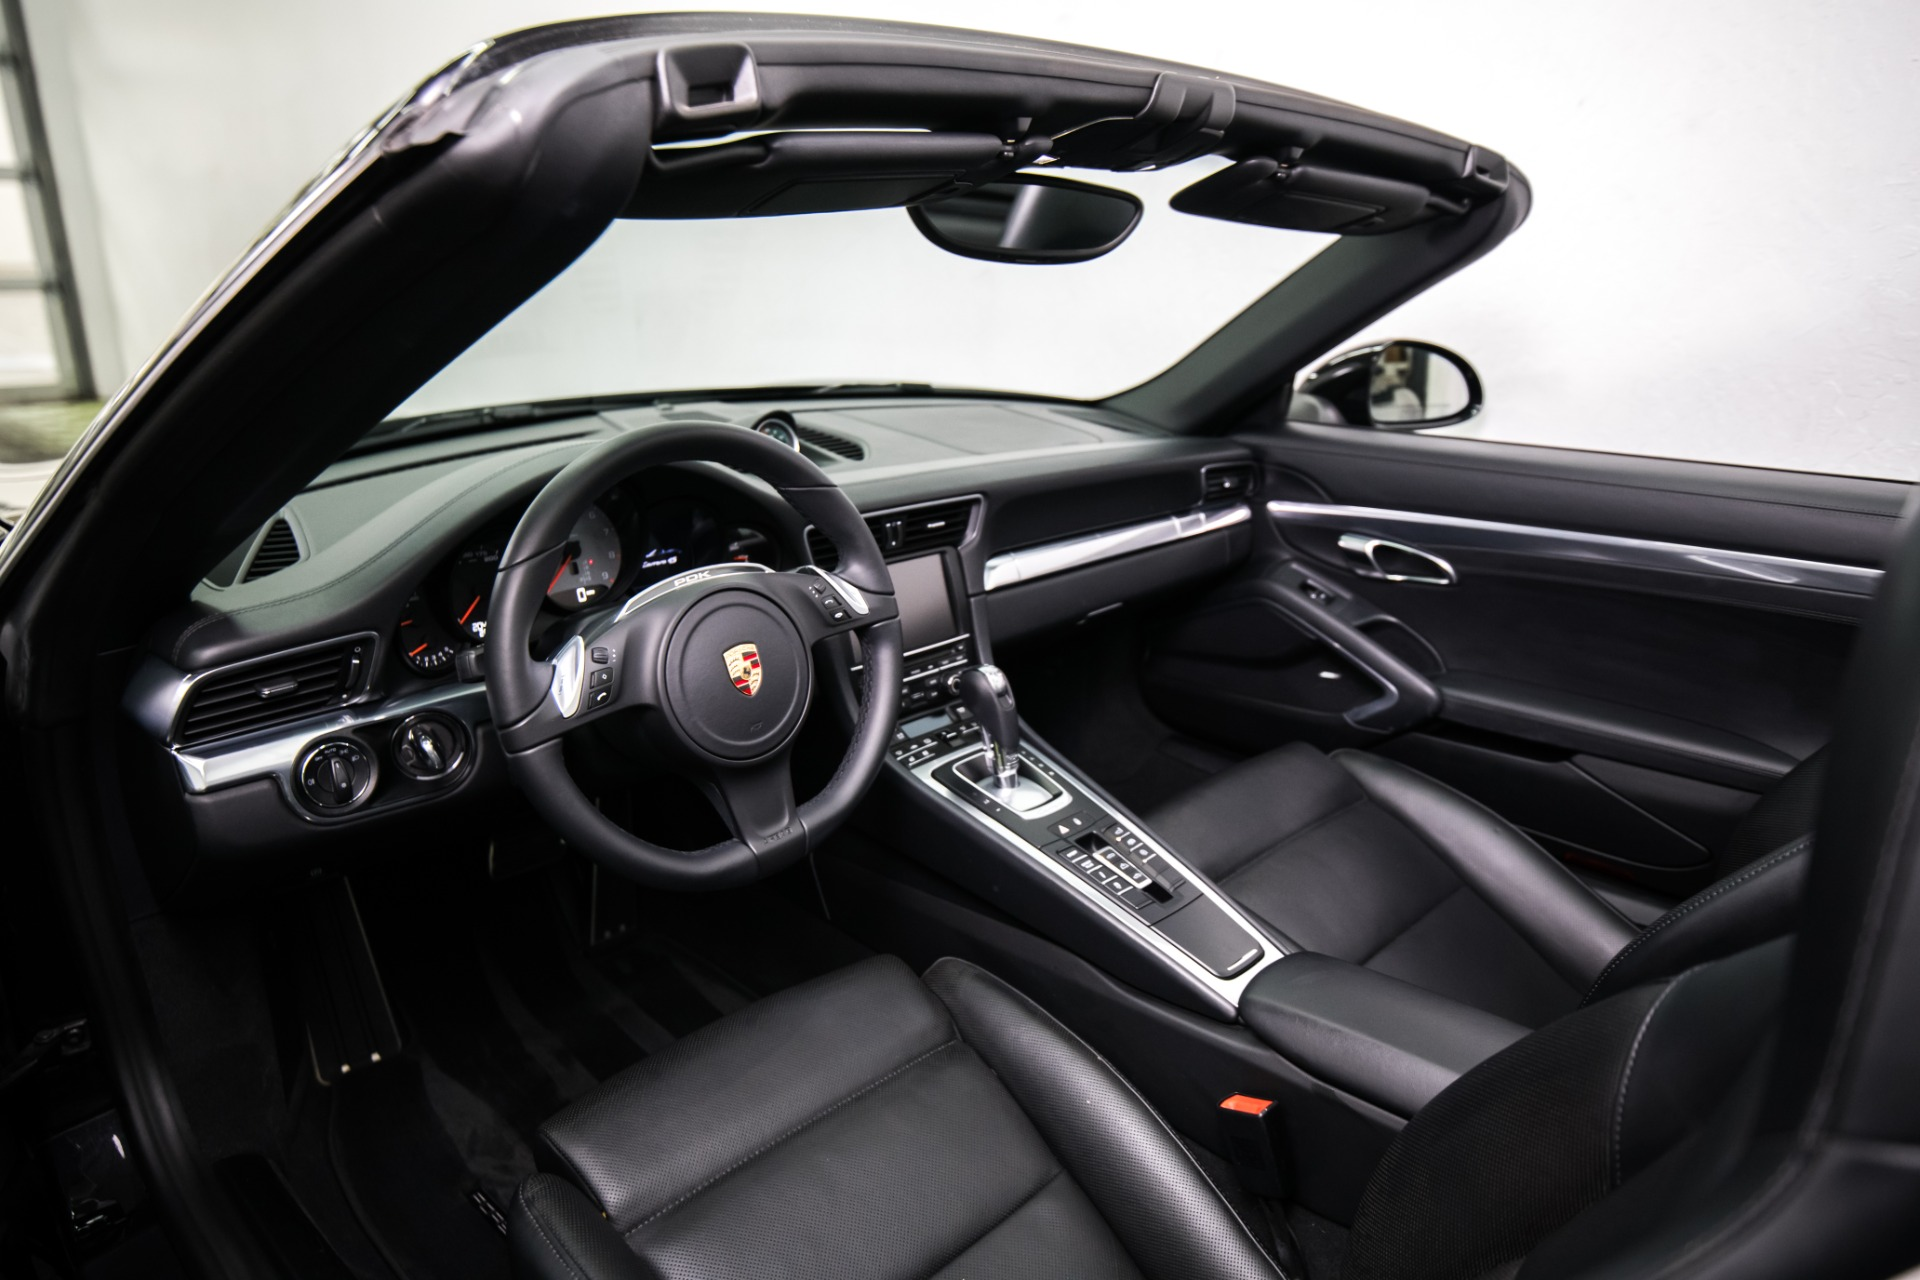 Used 2014 Porsche 911 Carrera 4S Used 2014 Porsche 911 Carrera 4S for sale Sold at Response Motors in Mountain View CA 18